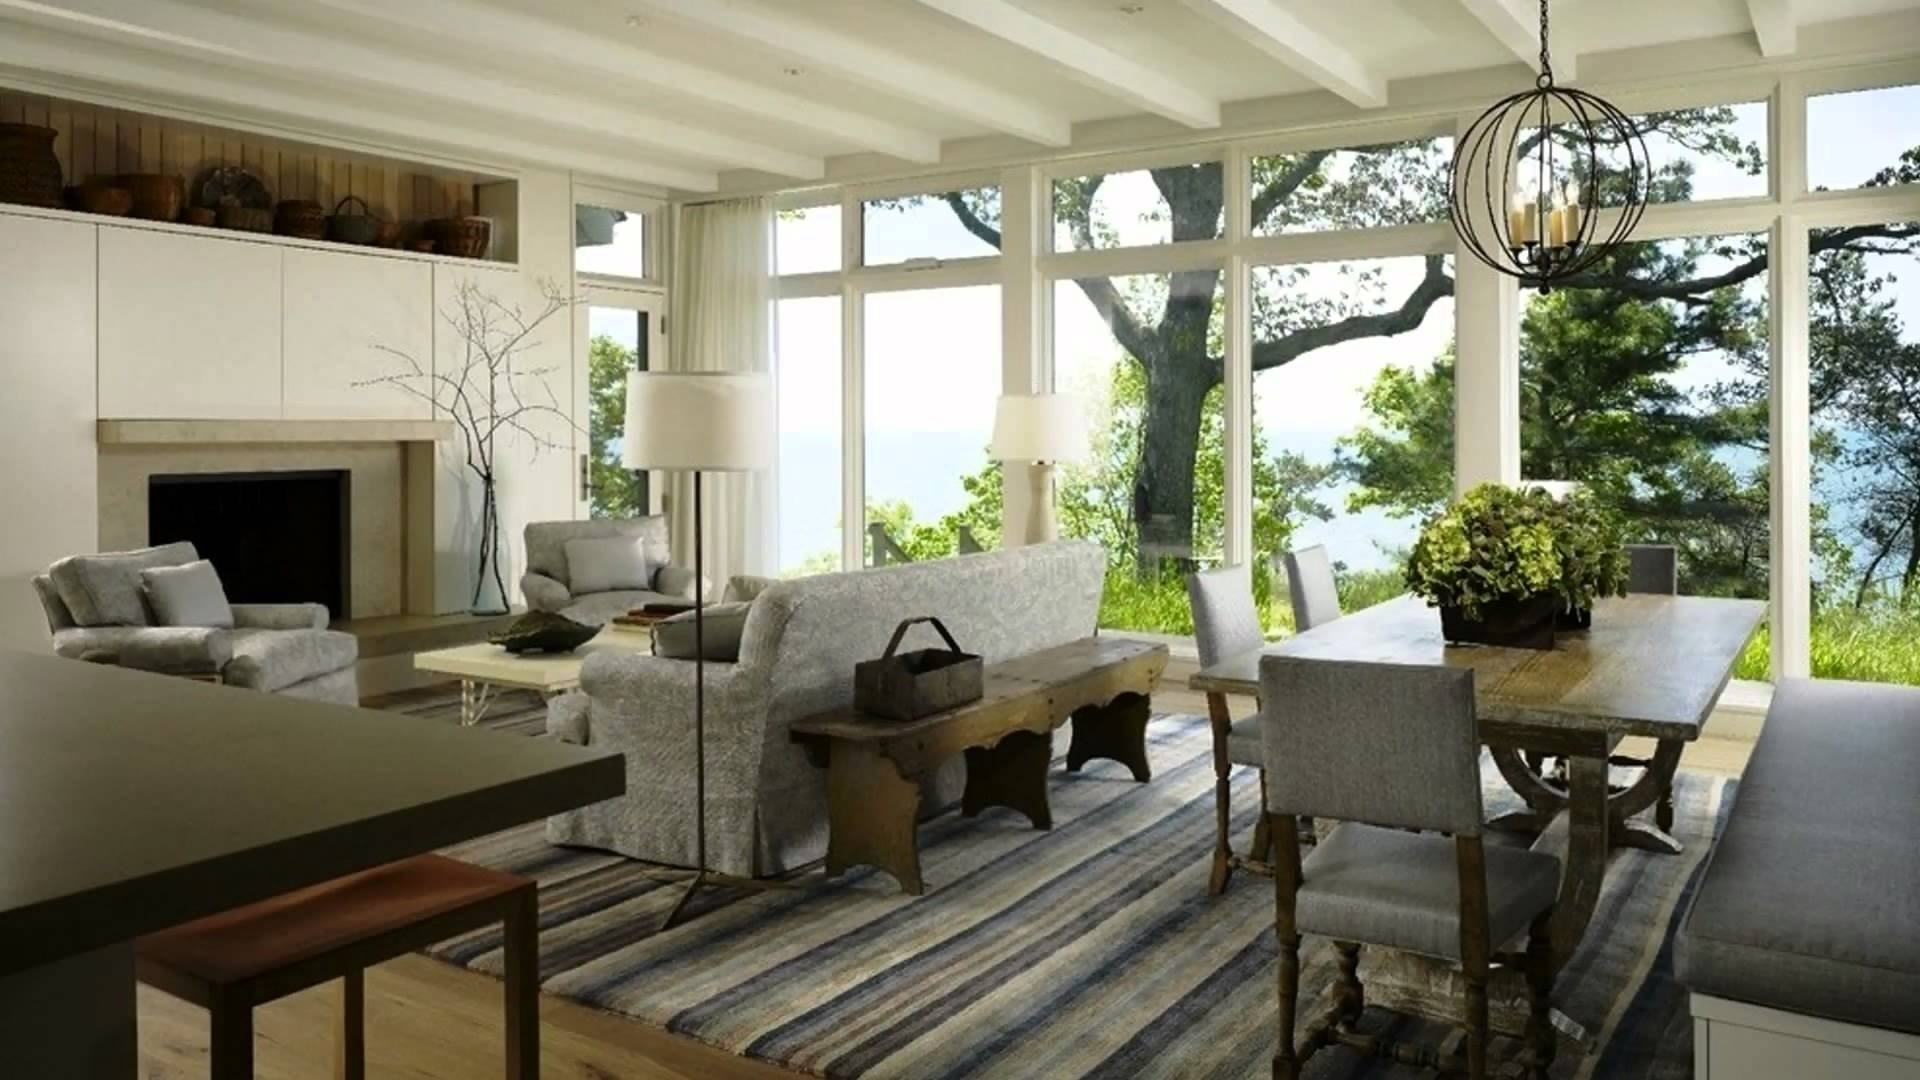 10 Ideal Living Room Dining Room Combo Decorating Ideas living and dining room combinations fabulous designer ideas youtube 2 2020